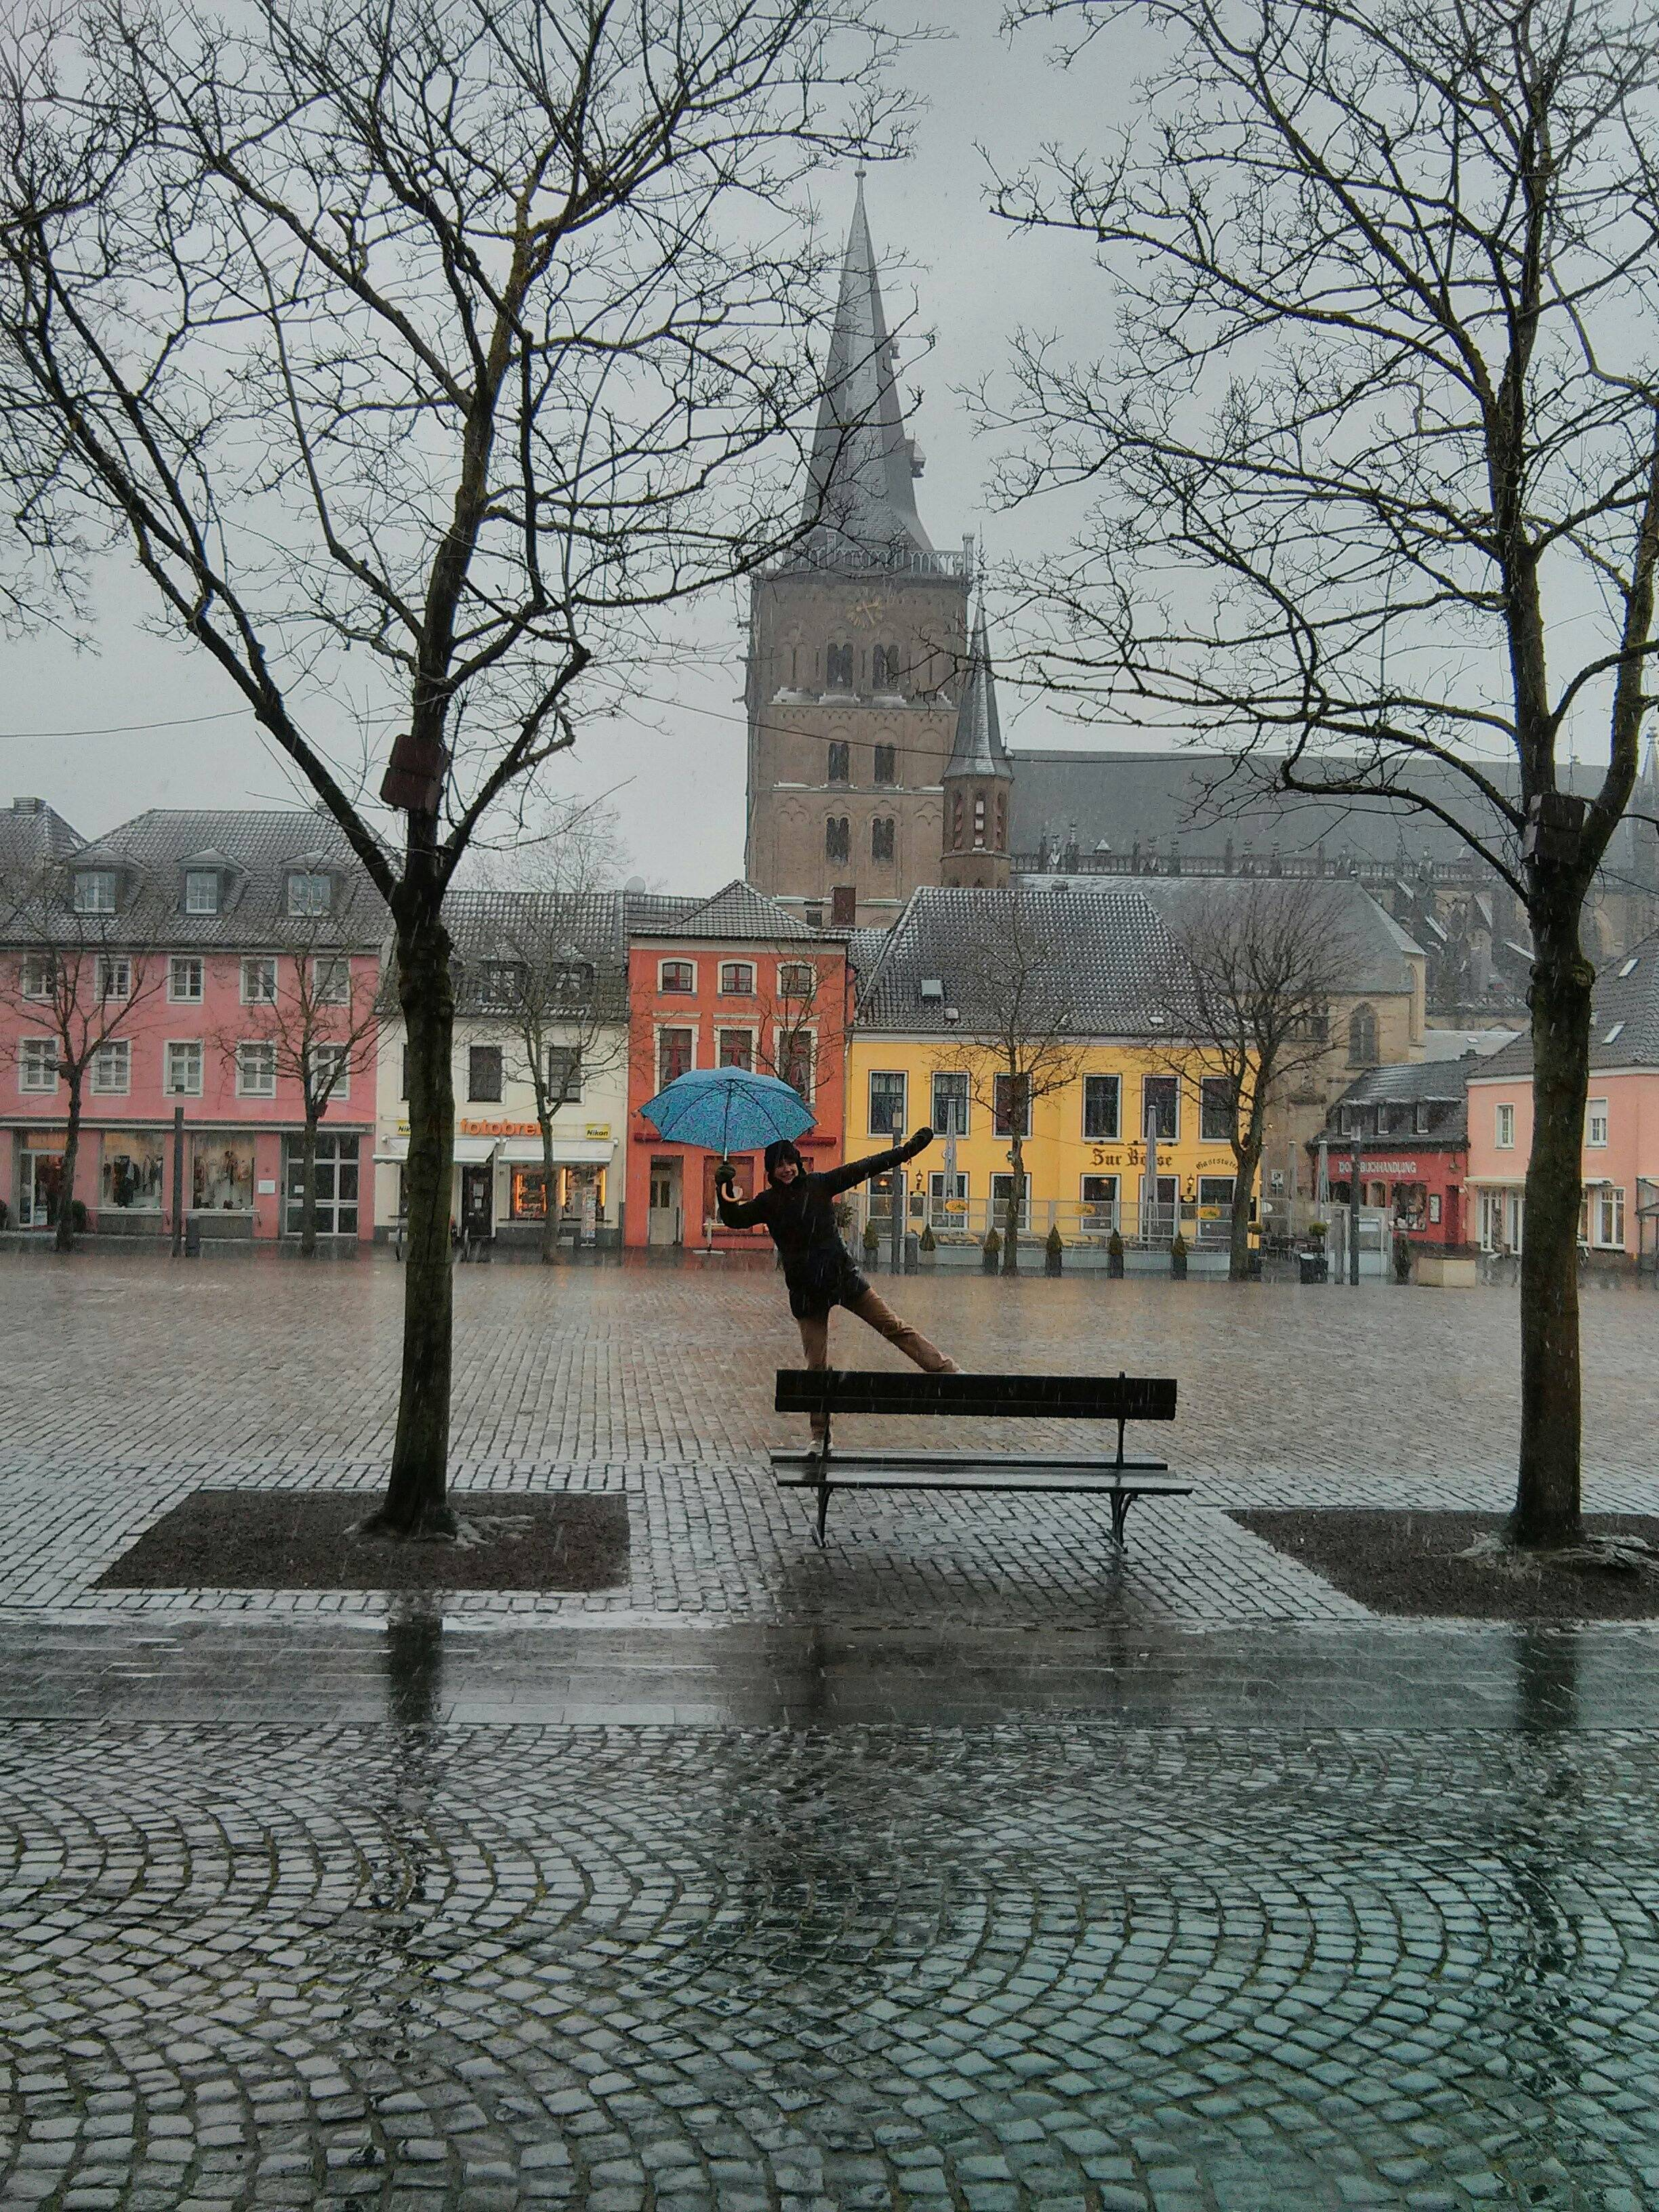 Nancy dancing in the rain in Xanten.